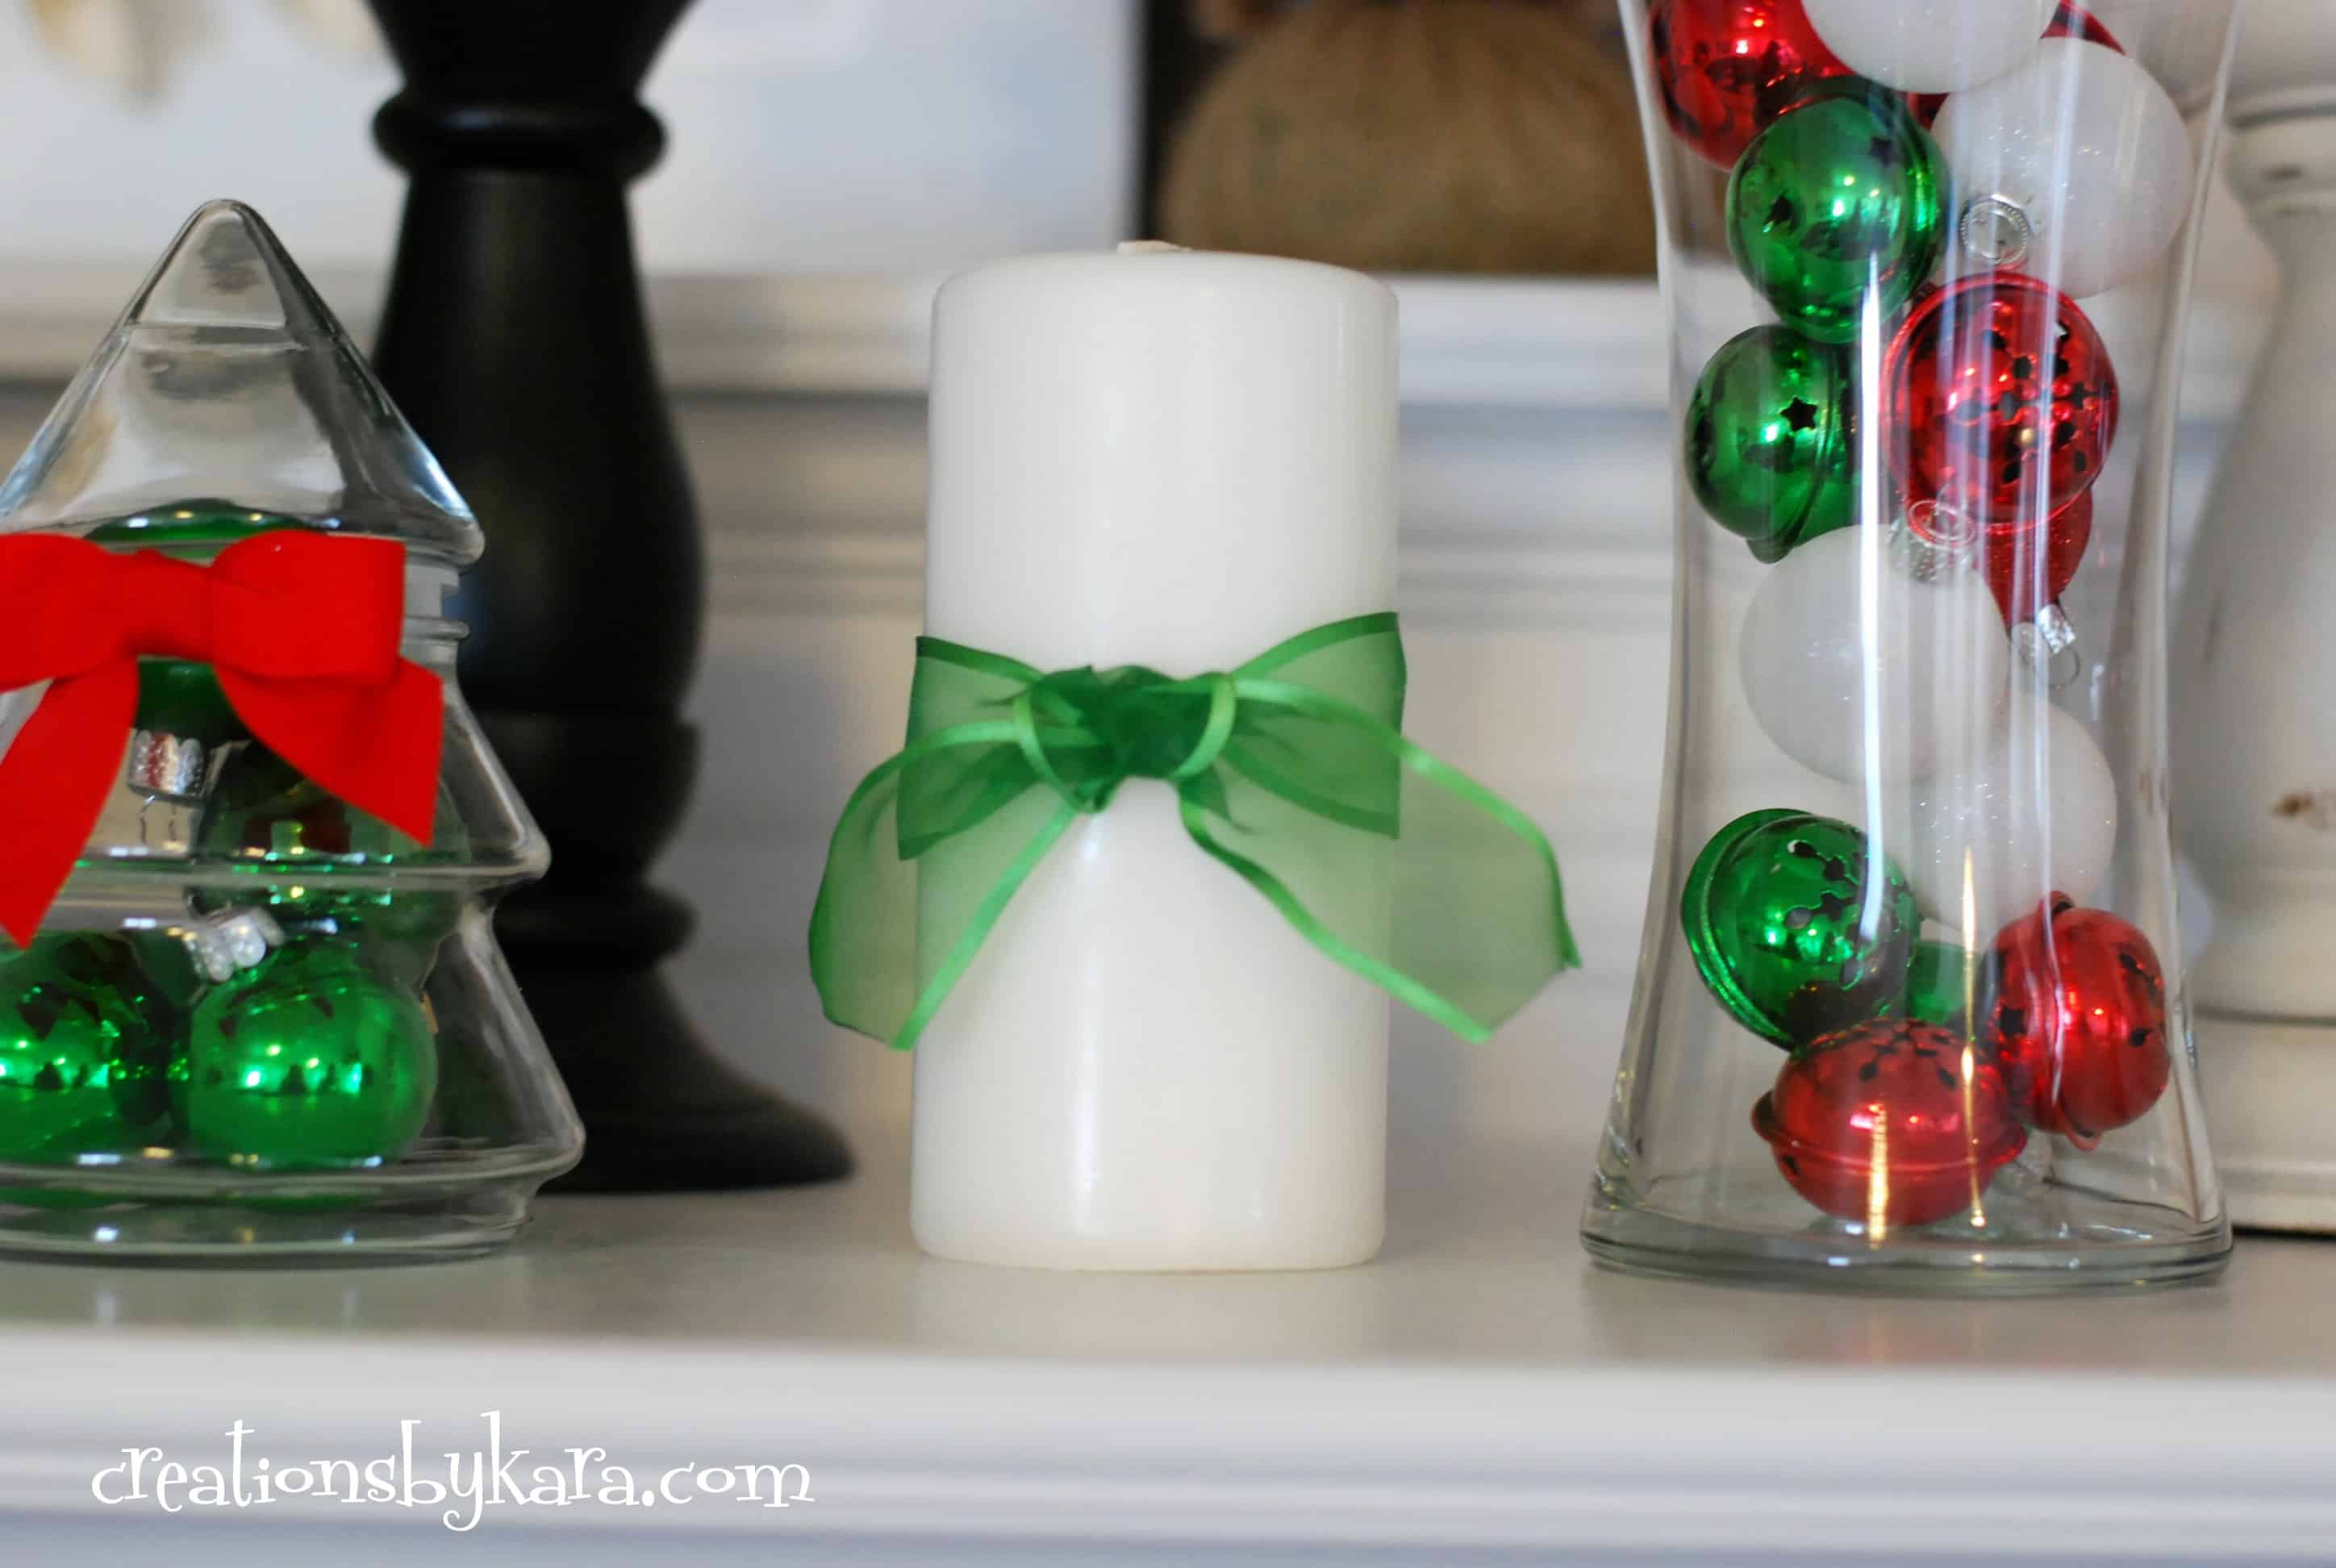 Christmas Decoration Ideas 2012 christmas mantel decor 2012 021 - creationskara